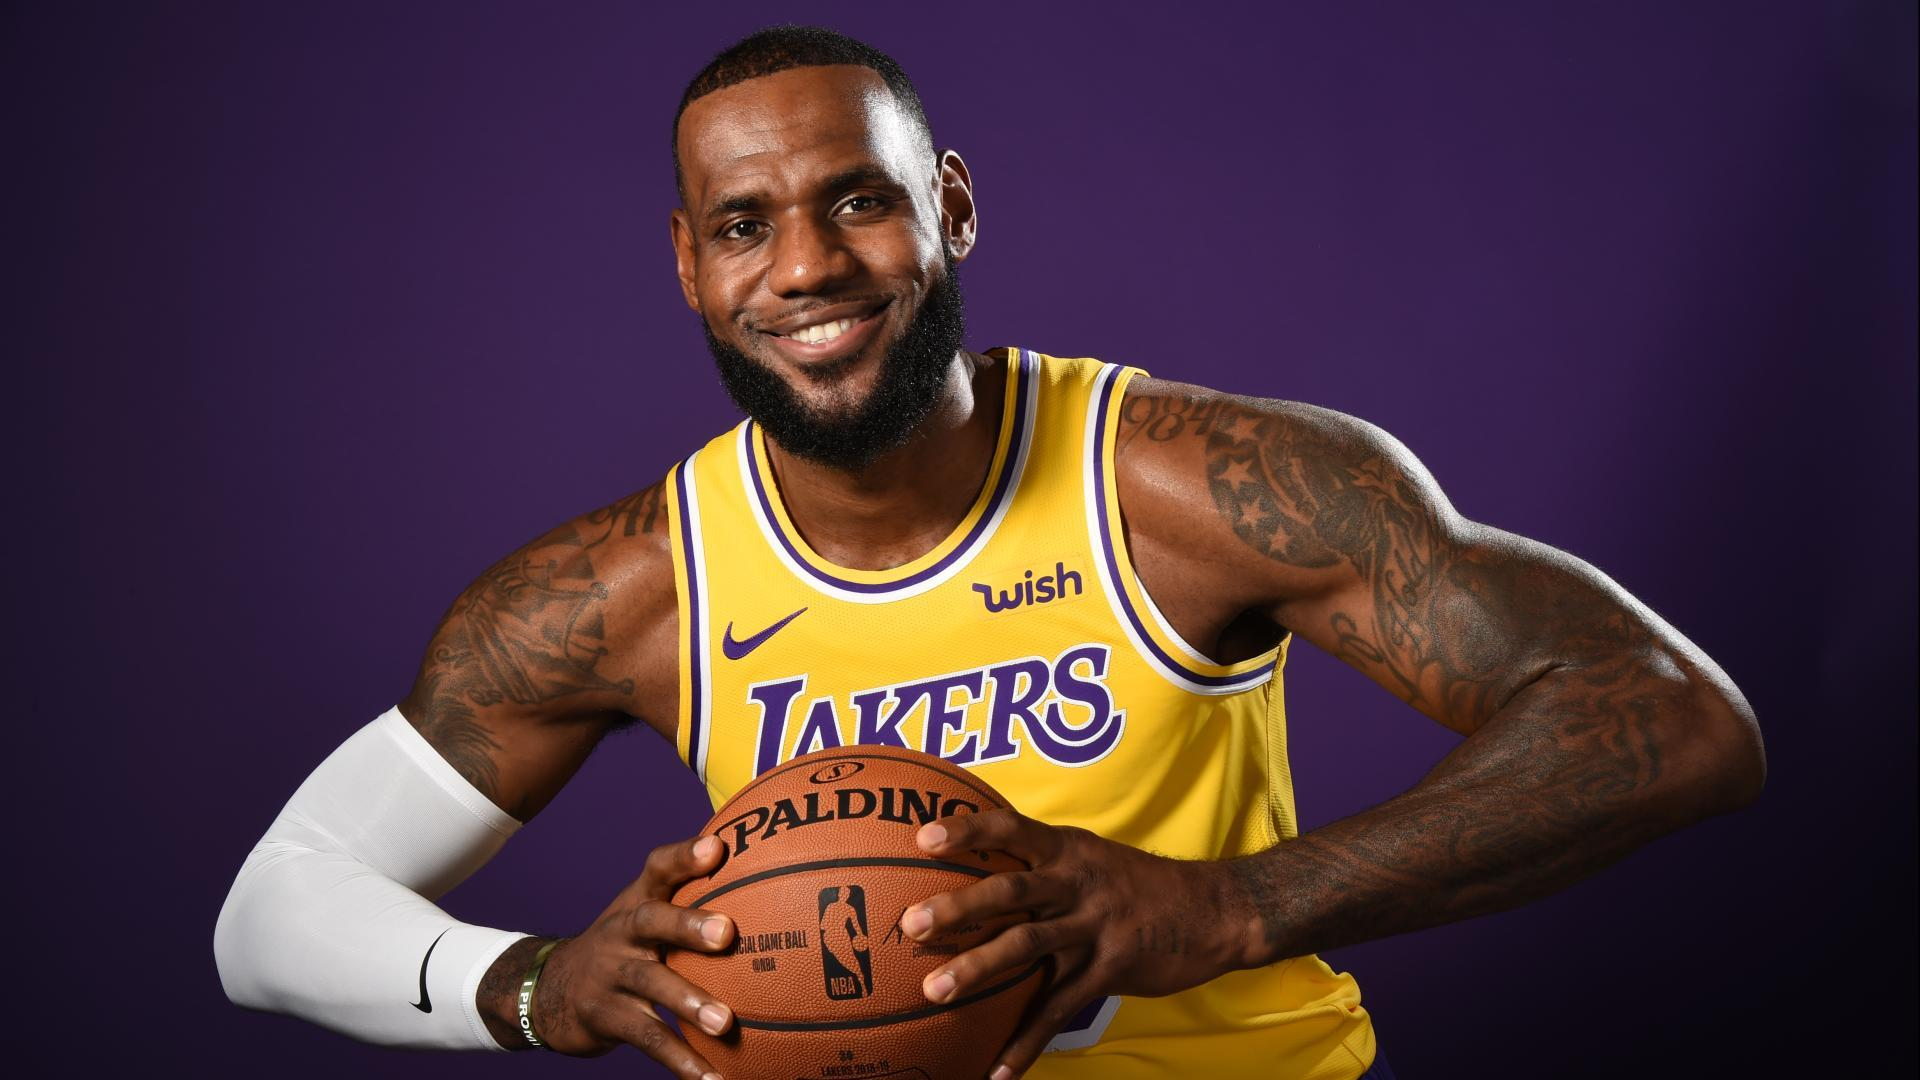 LeBron James praises Lonzo Ball for getting through rough start